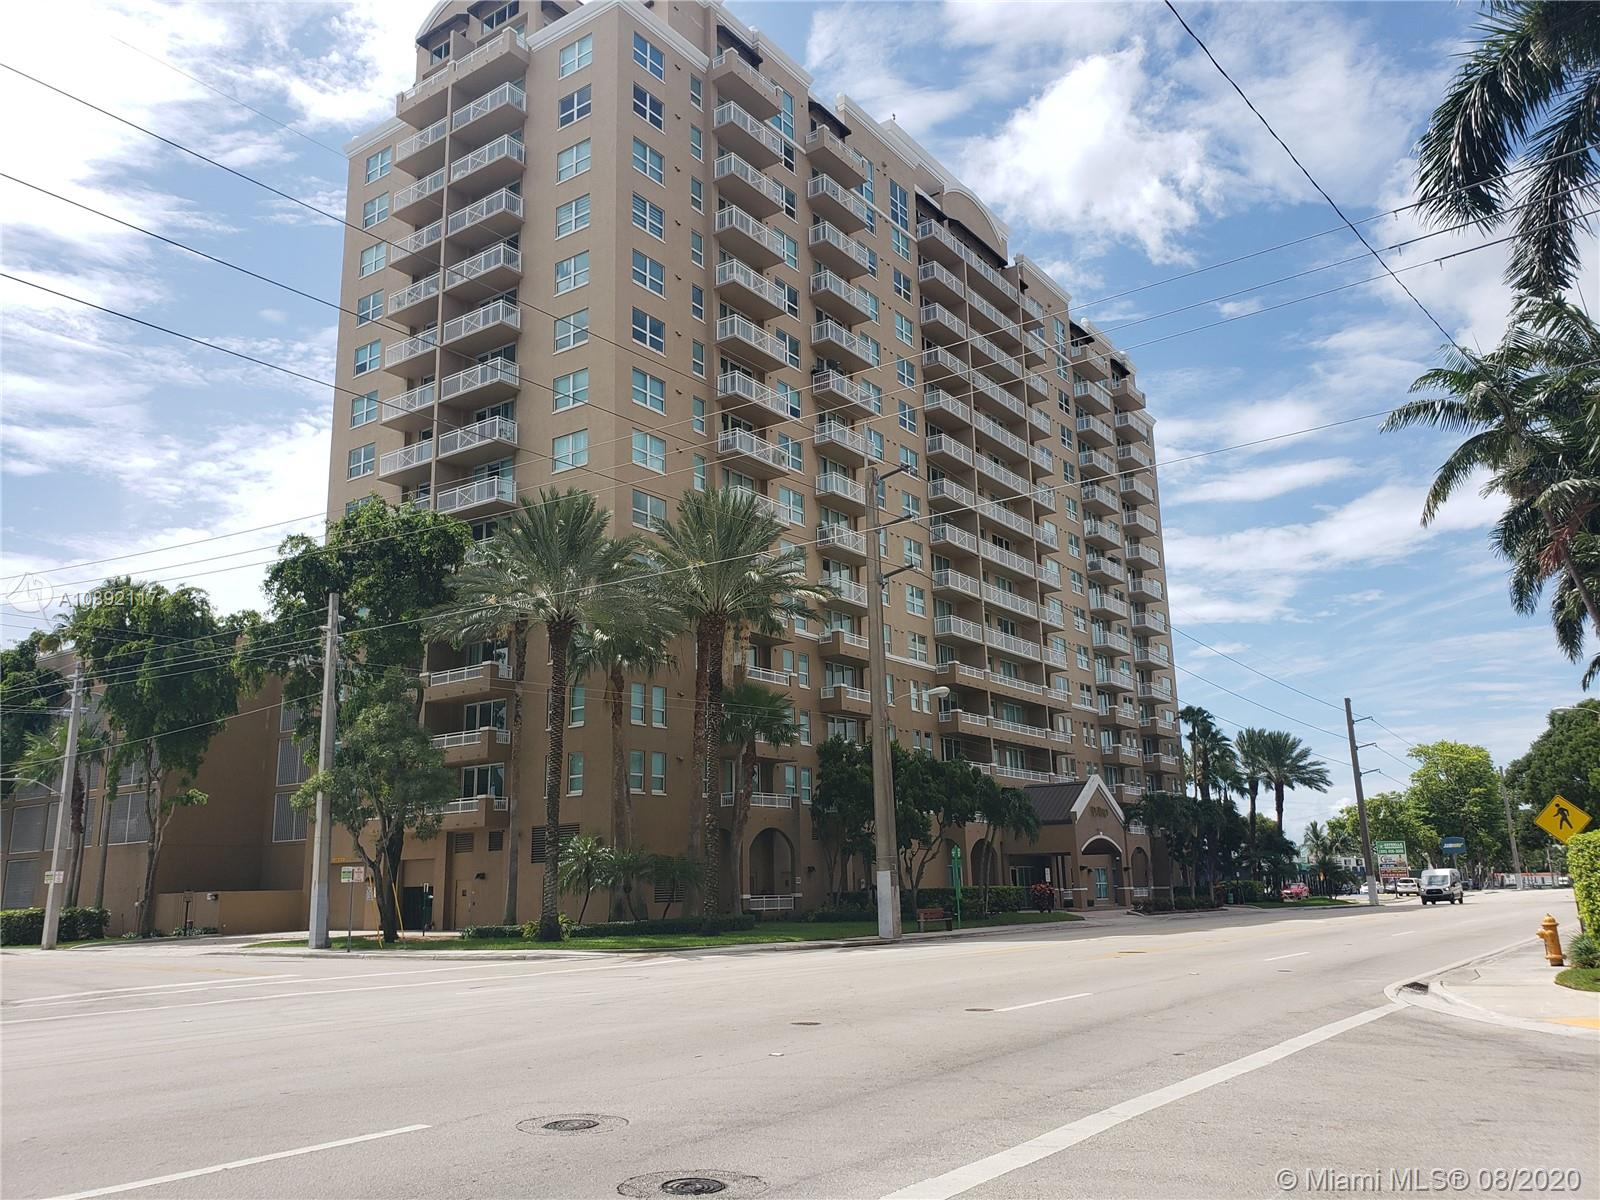 Breath-taking unit located in Gables area. Unit composed by 2 beds/2 baths, laundry area, open balcony & city view, Carpeted floors and with 2 parking spaces perfect for guests. Property under auction terms.This is a secured building w/ community pool & other amenities. Unit in excellent condition that makes this property a perfect opportunity for living.